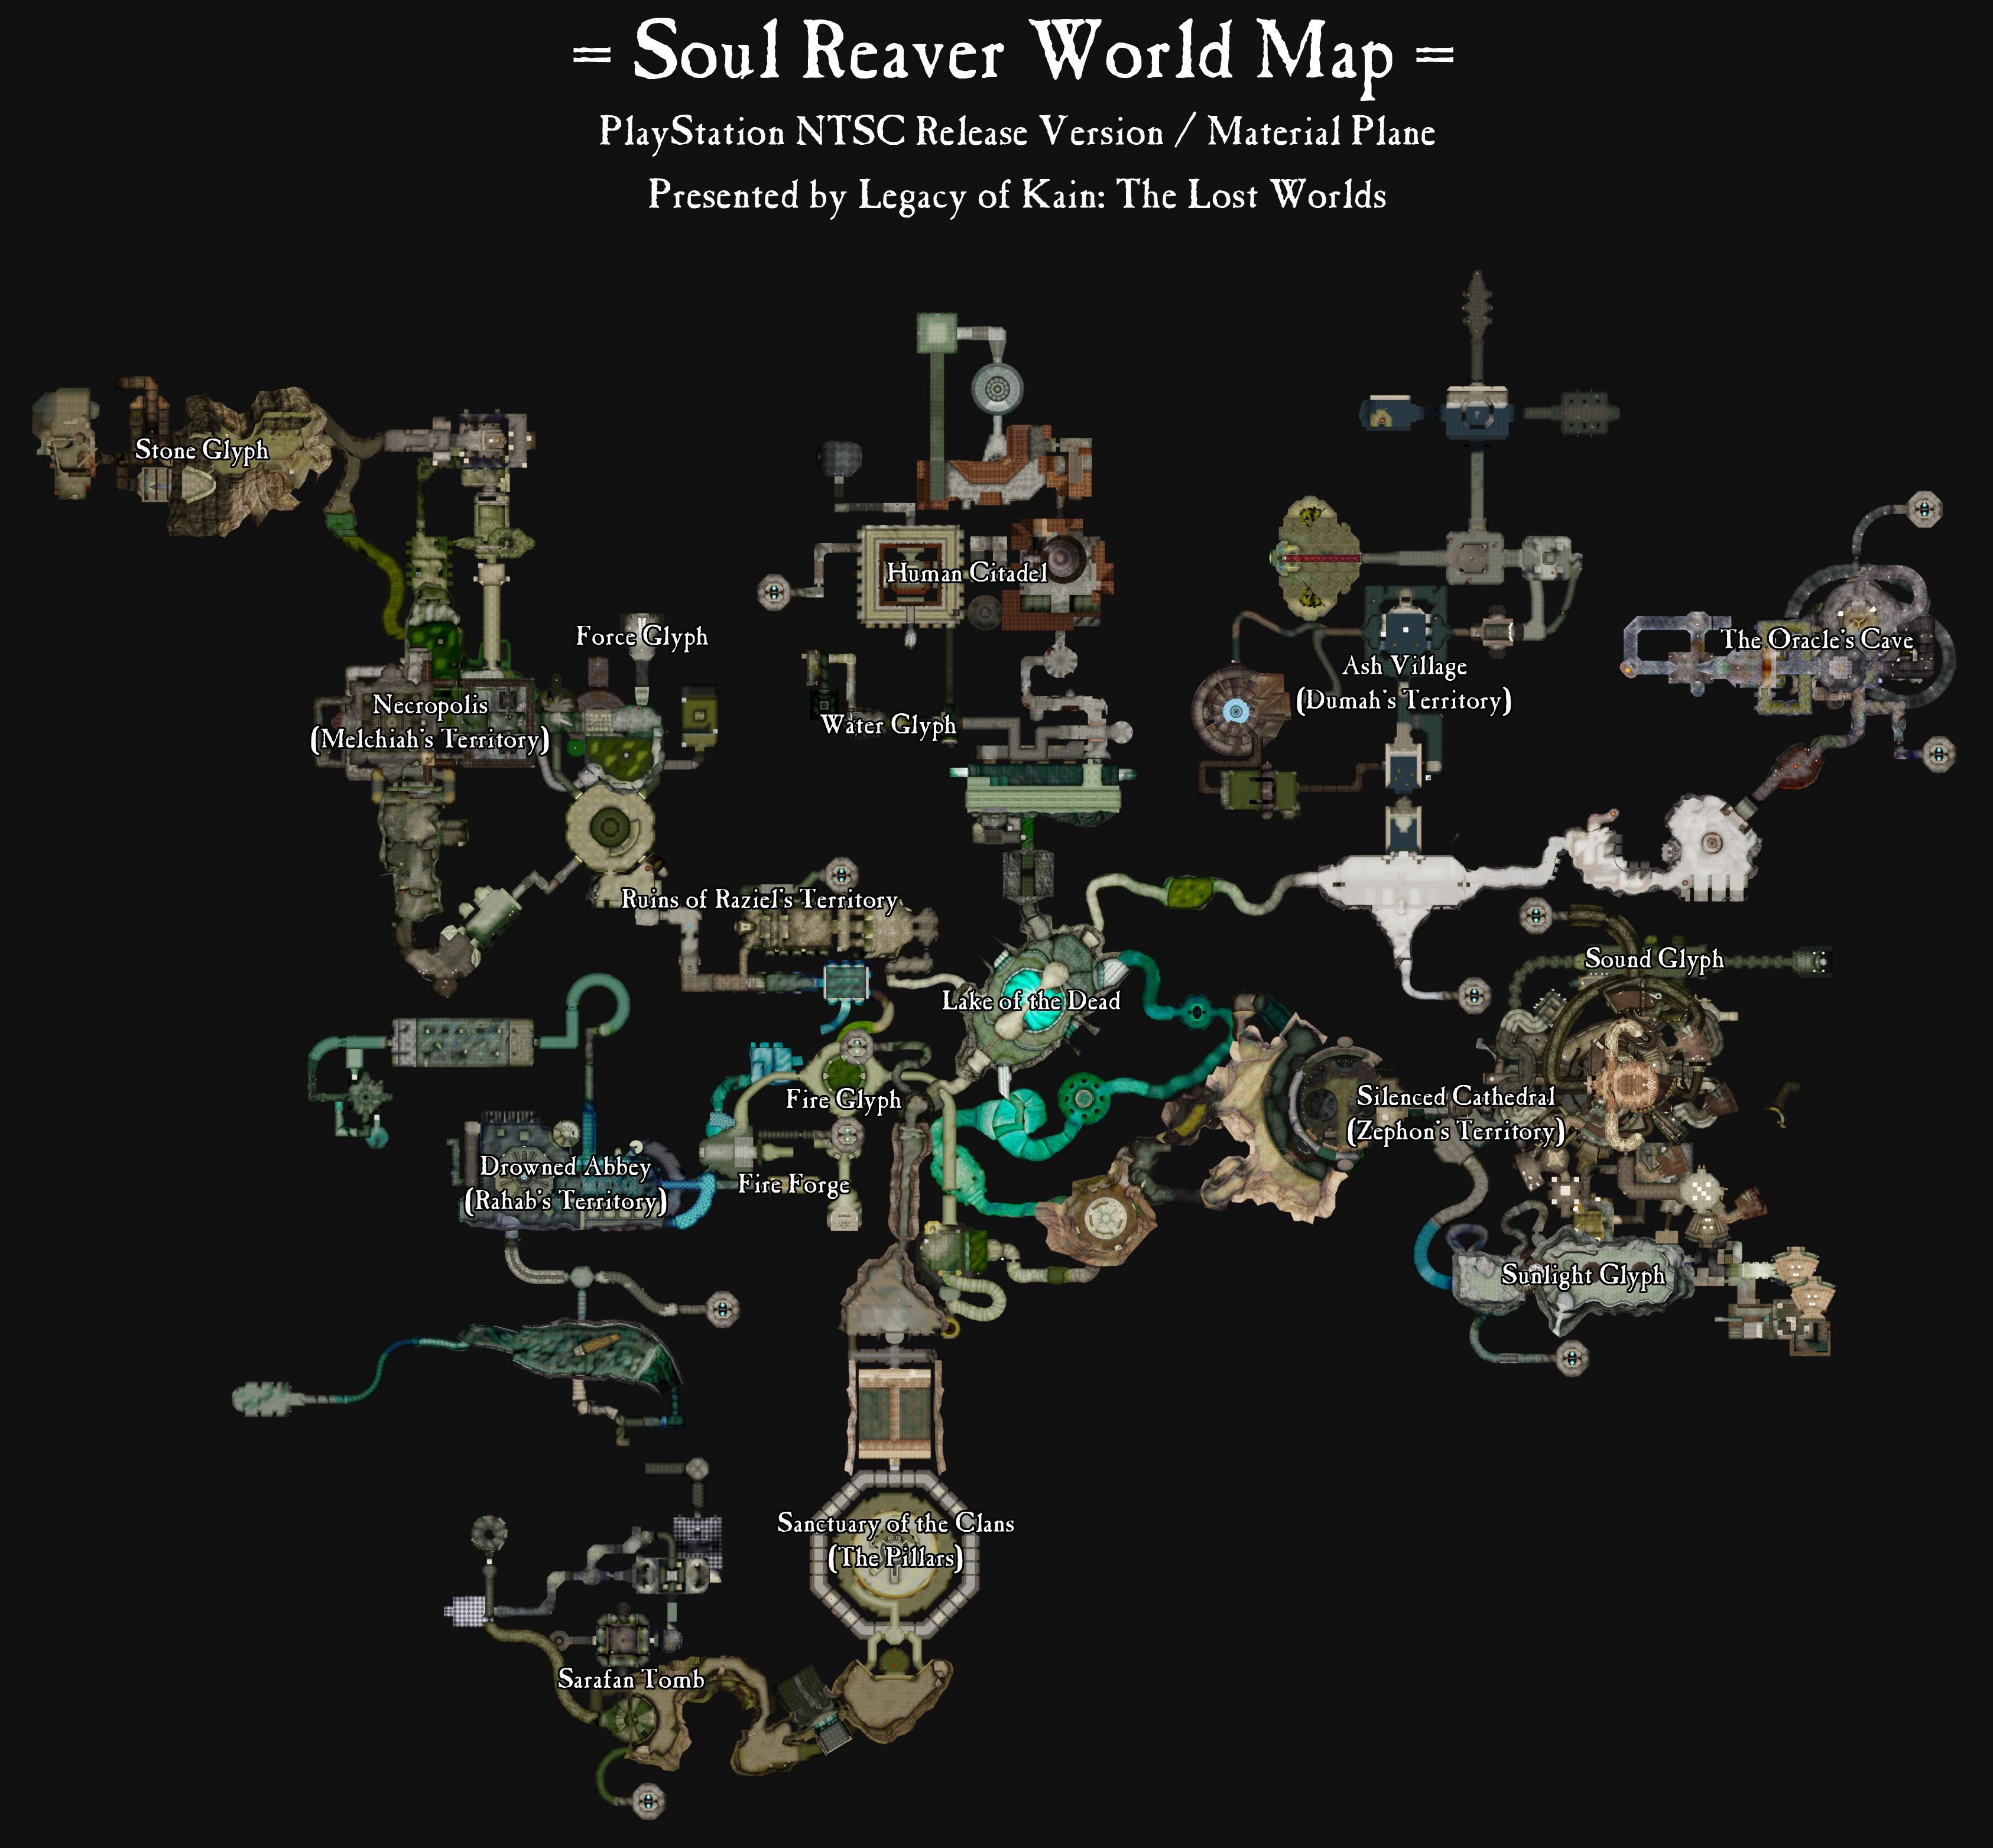 World Map Evolution-01-Maps-Soul Reaver World Map-NTSC Release-Material-Annotated.jpg